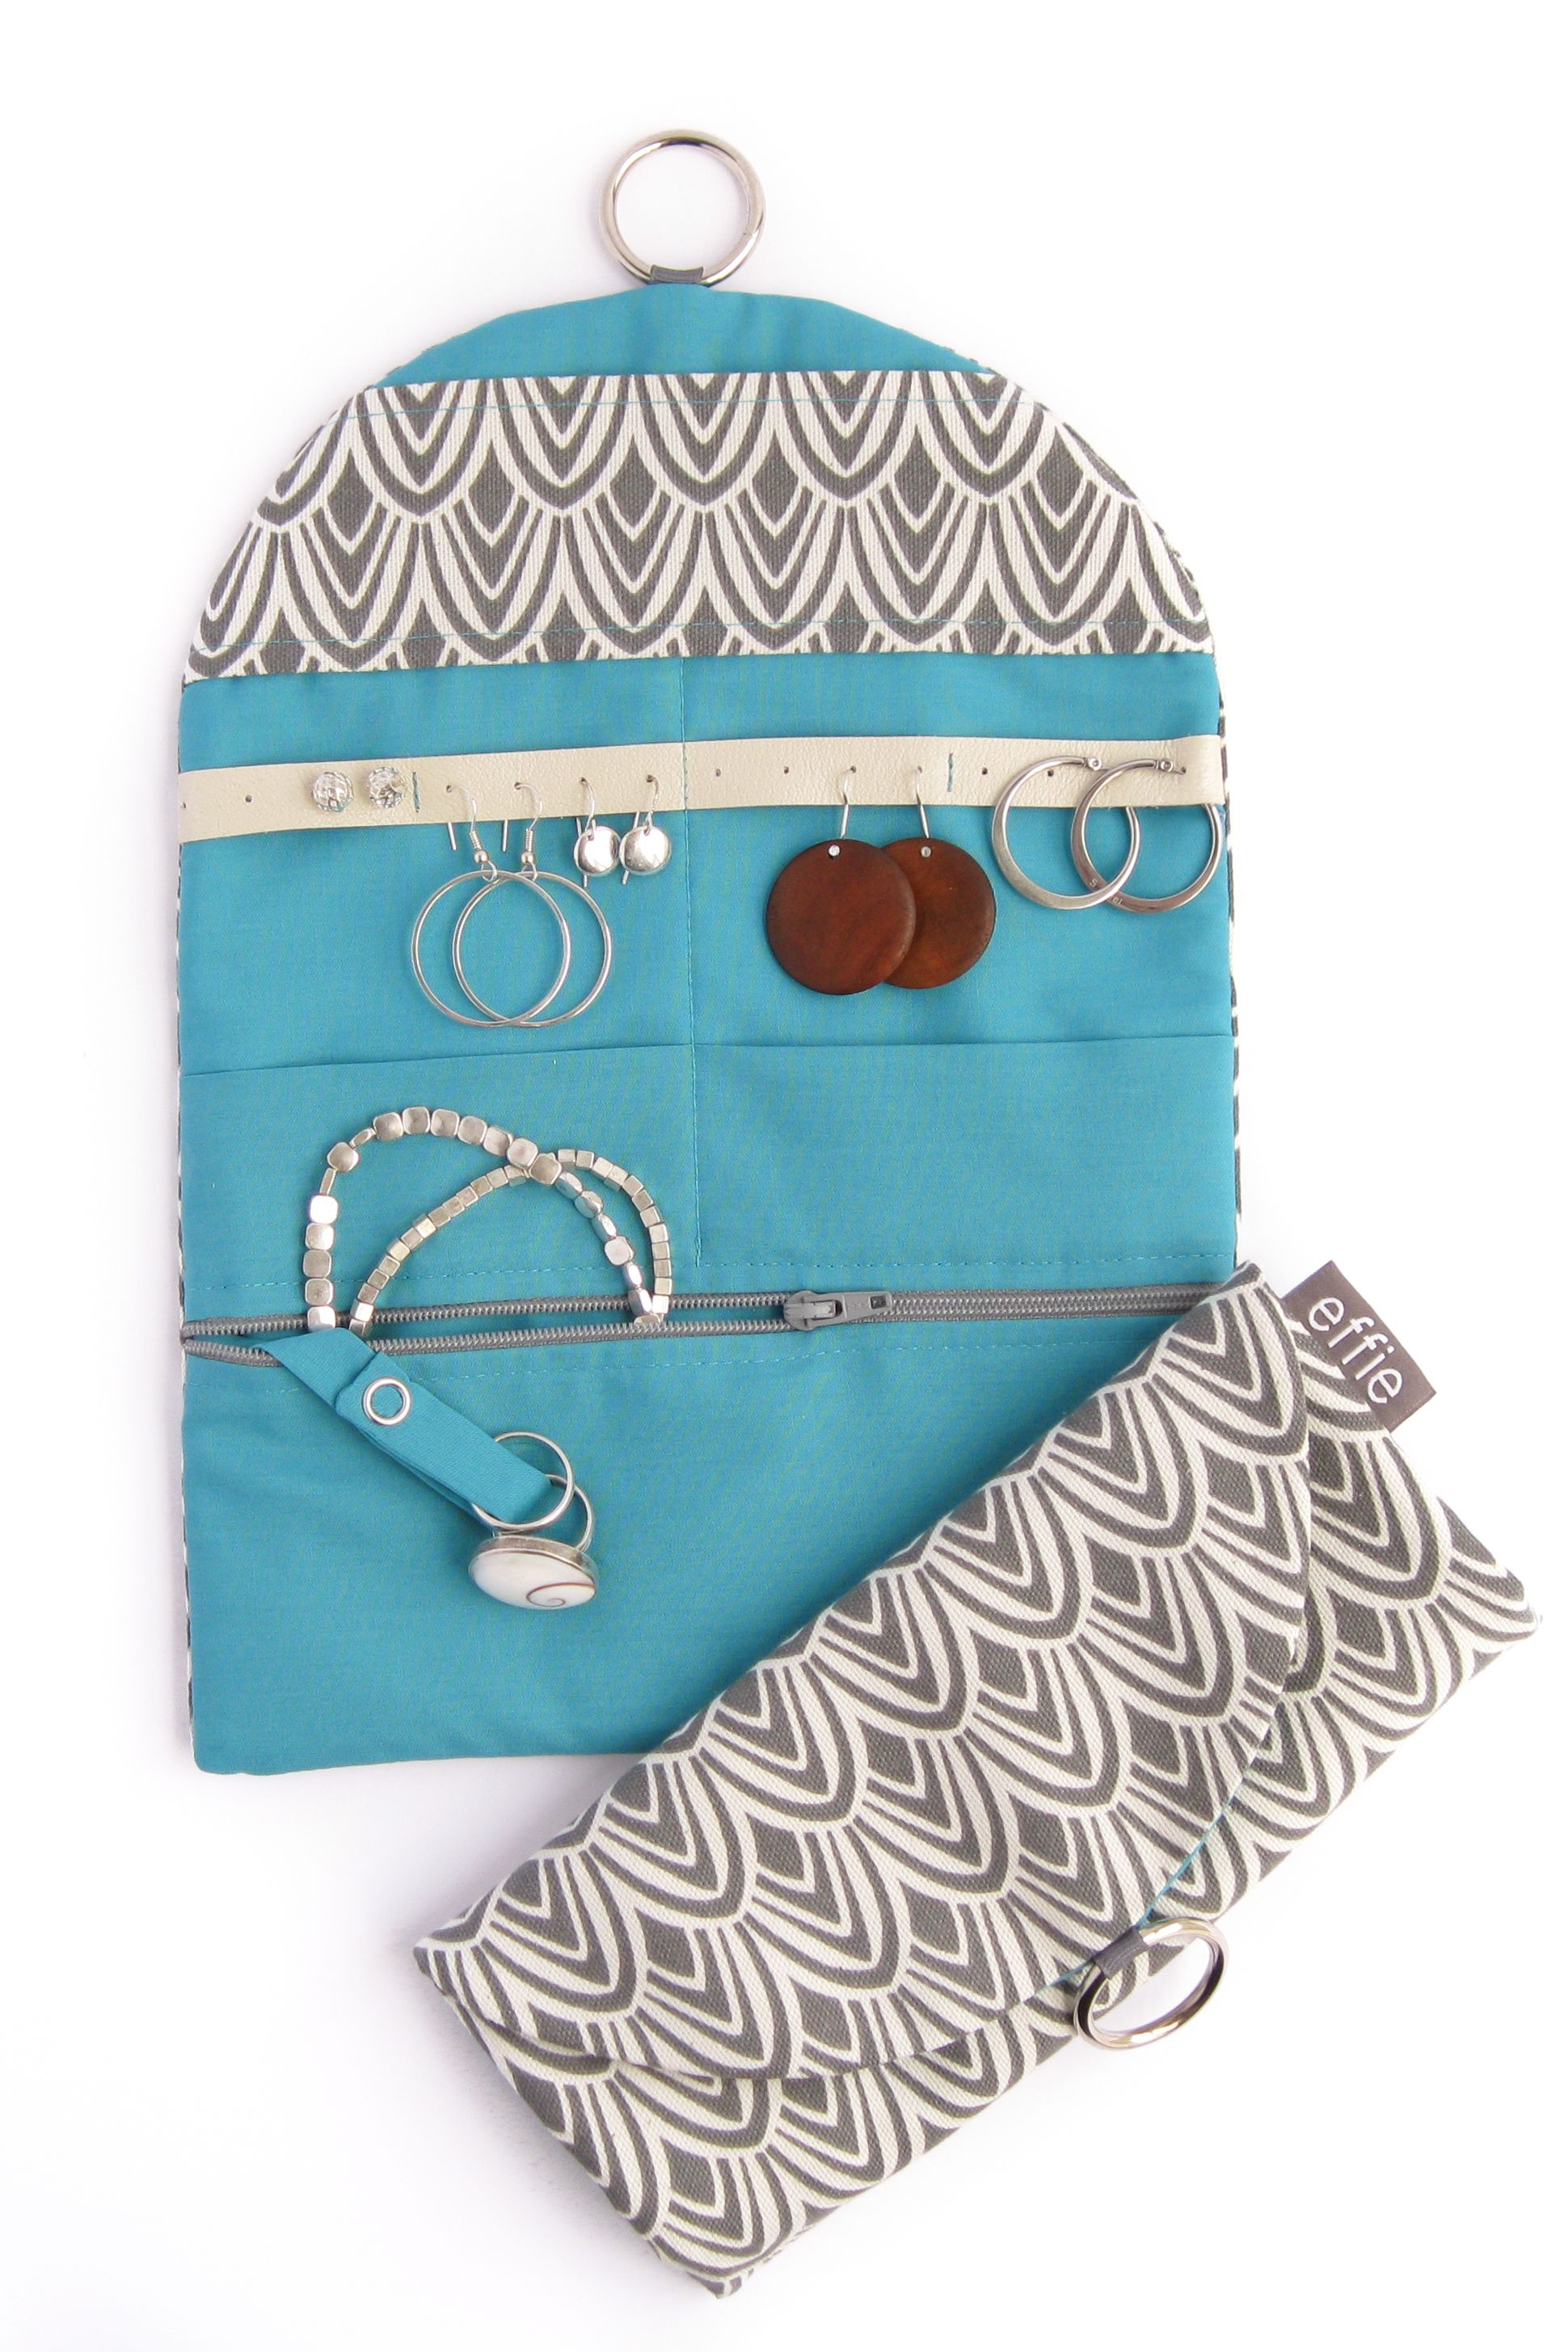 Charcoal and Teal Jewelry Travel Organizer Wanderlust Gifts